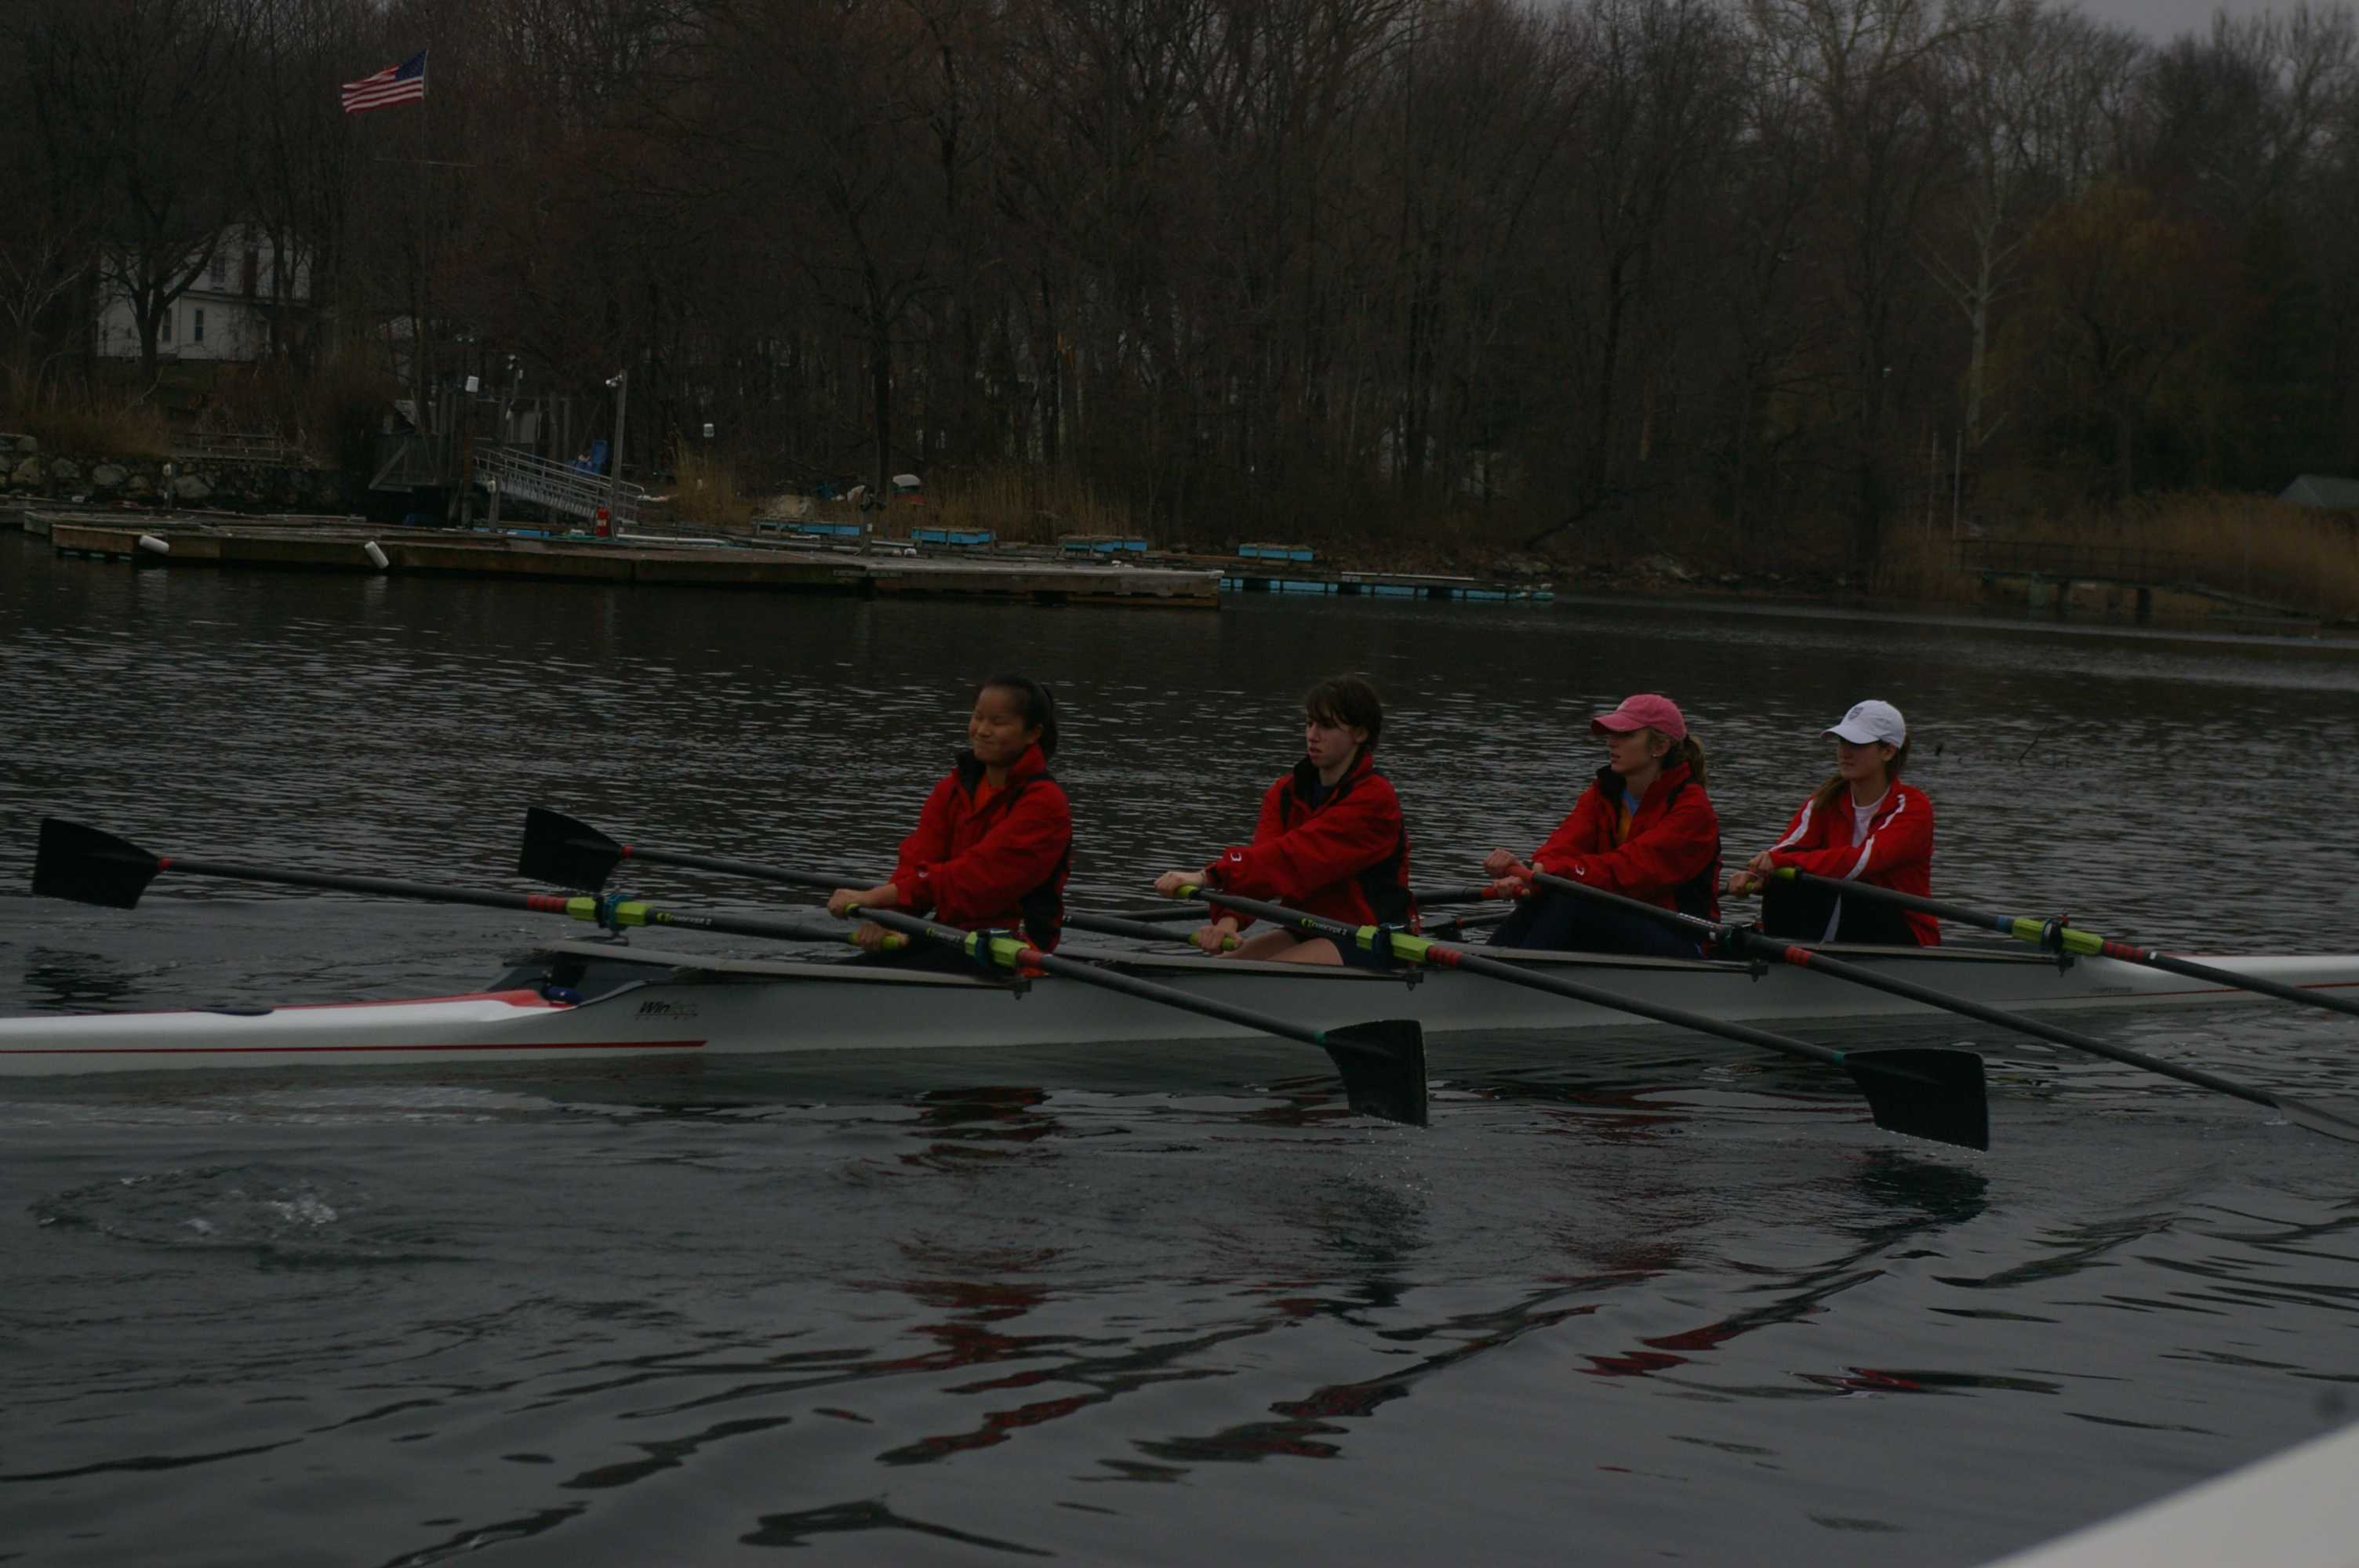 Rain or shine, the Staples Sailing team continues to practice. | Photo by Suzanne Kleine '11